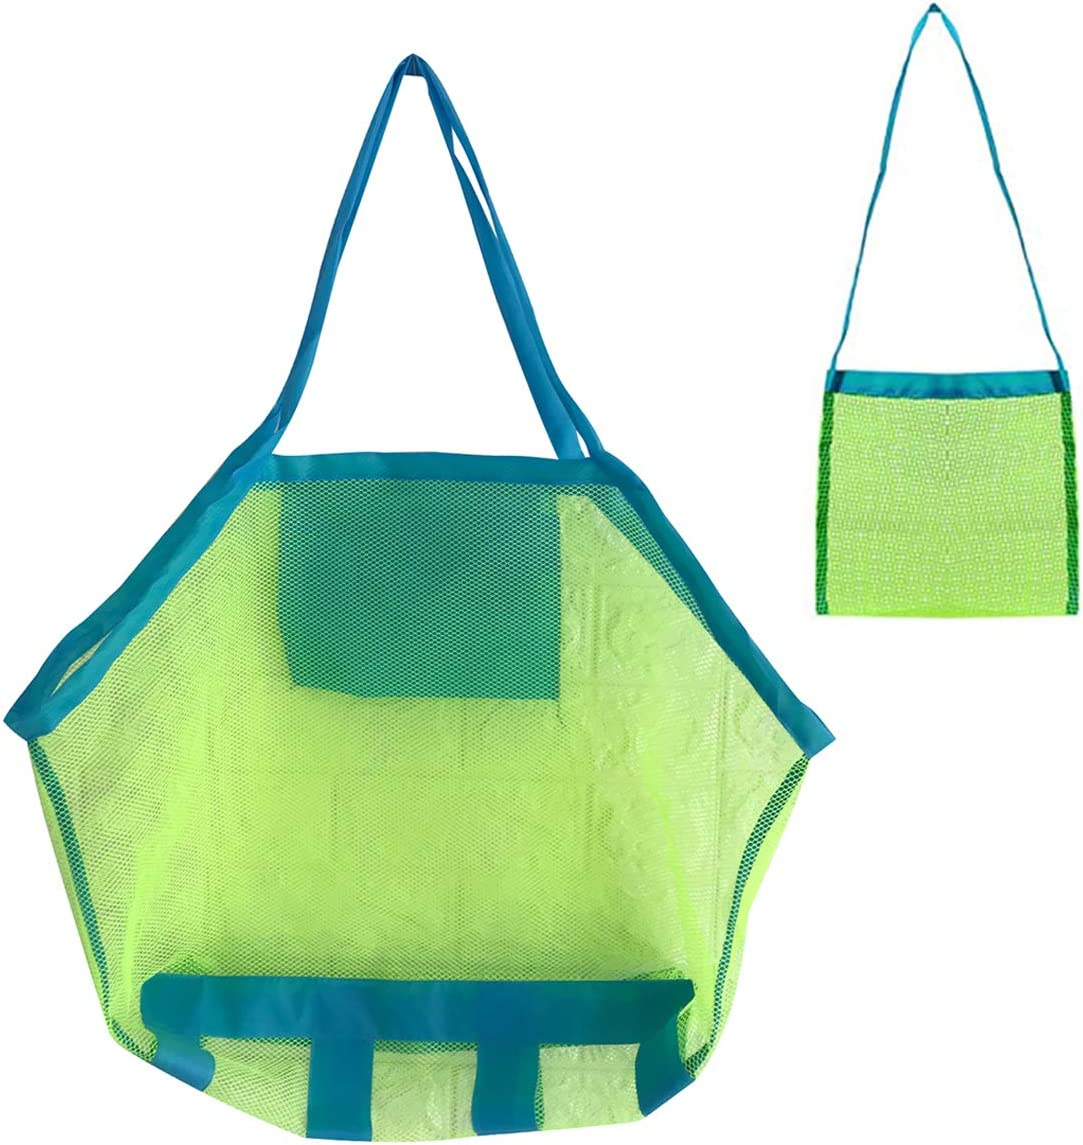 Toys Not Included Afomida Mesh Beach Bag Large Tote Sand Beach Toy Bag Durable Backpack Swim and Pool Kids Toys Balls Drawstring Storage Bags Picnic Packs Water Sand Away